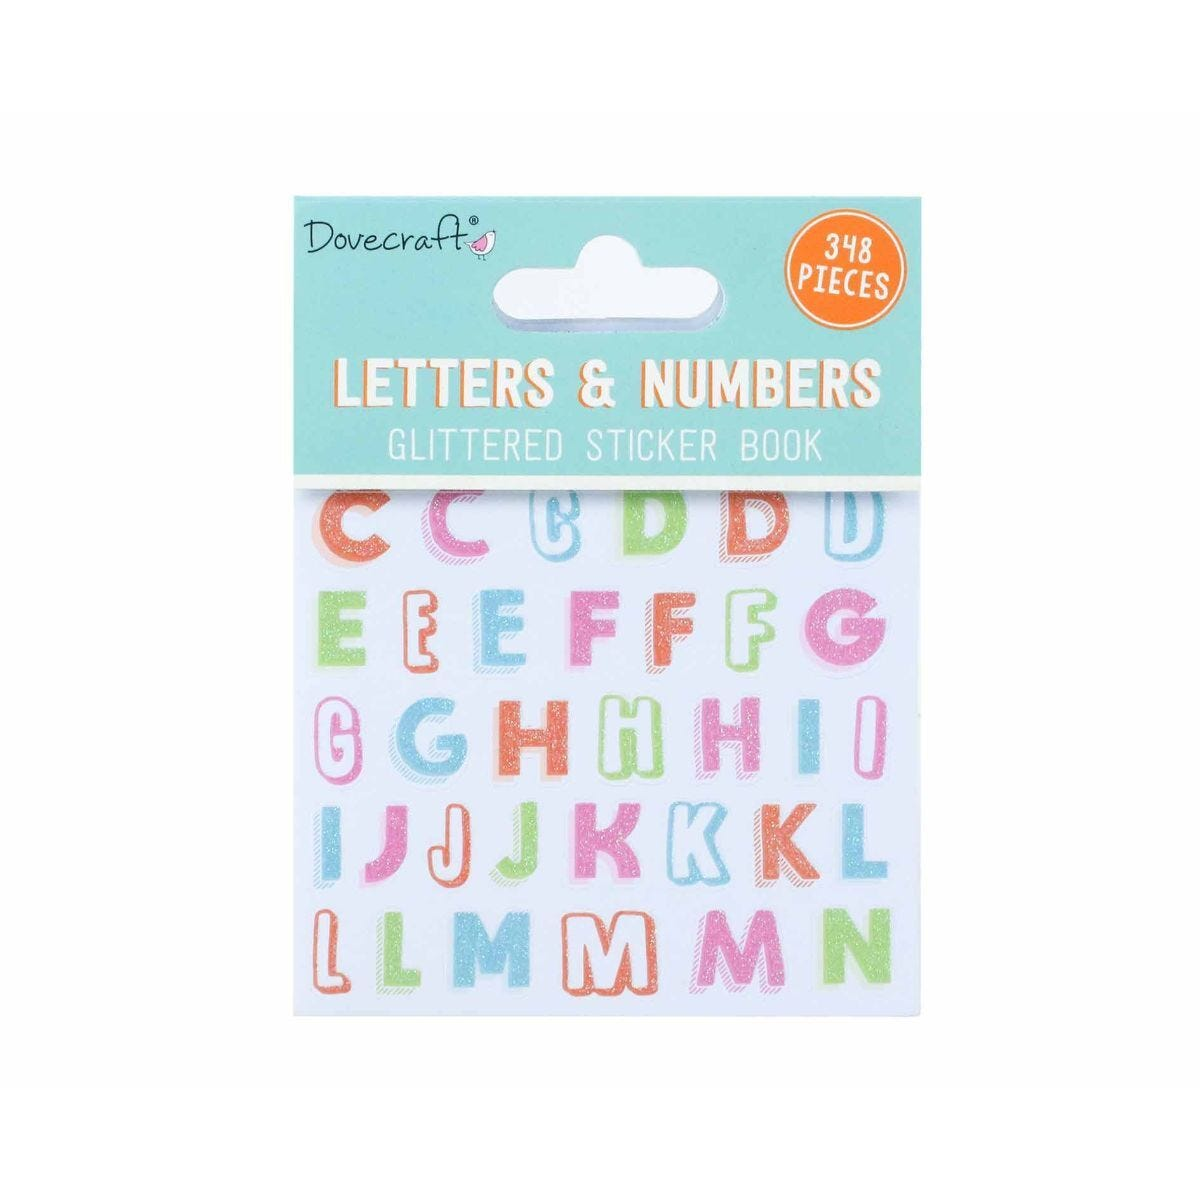 Dovecraft Letter and Numbers Glittered Sticker Book